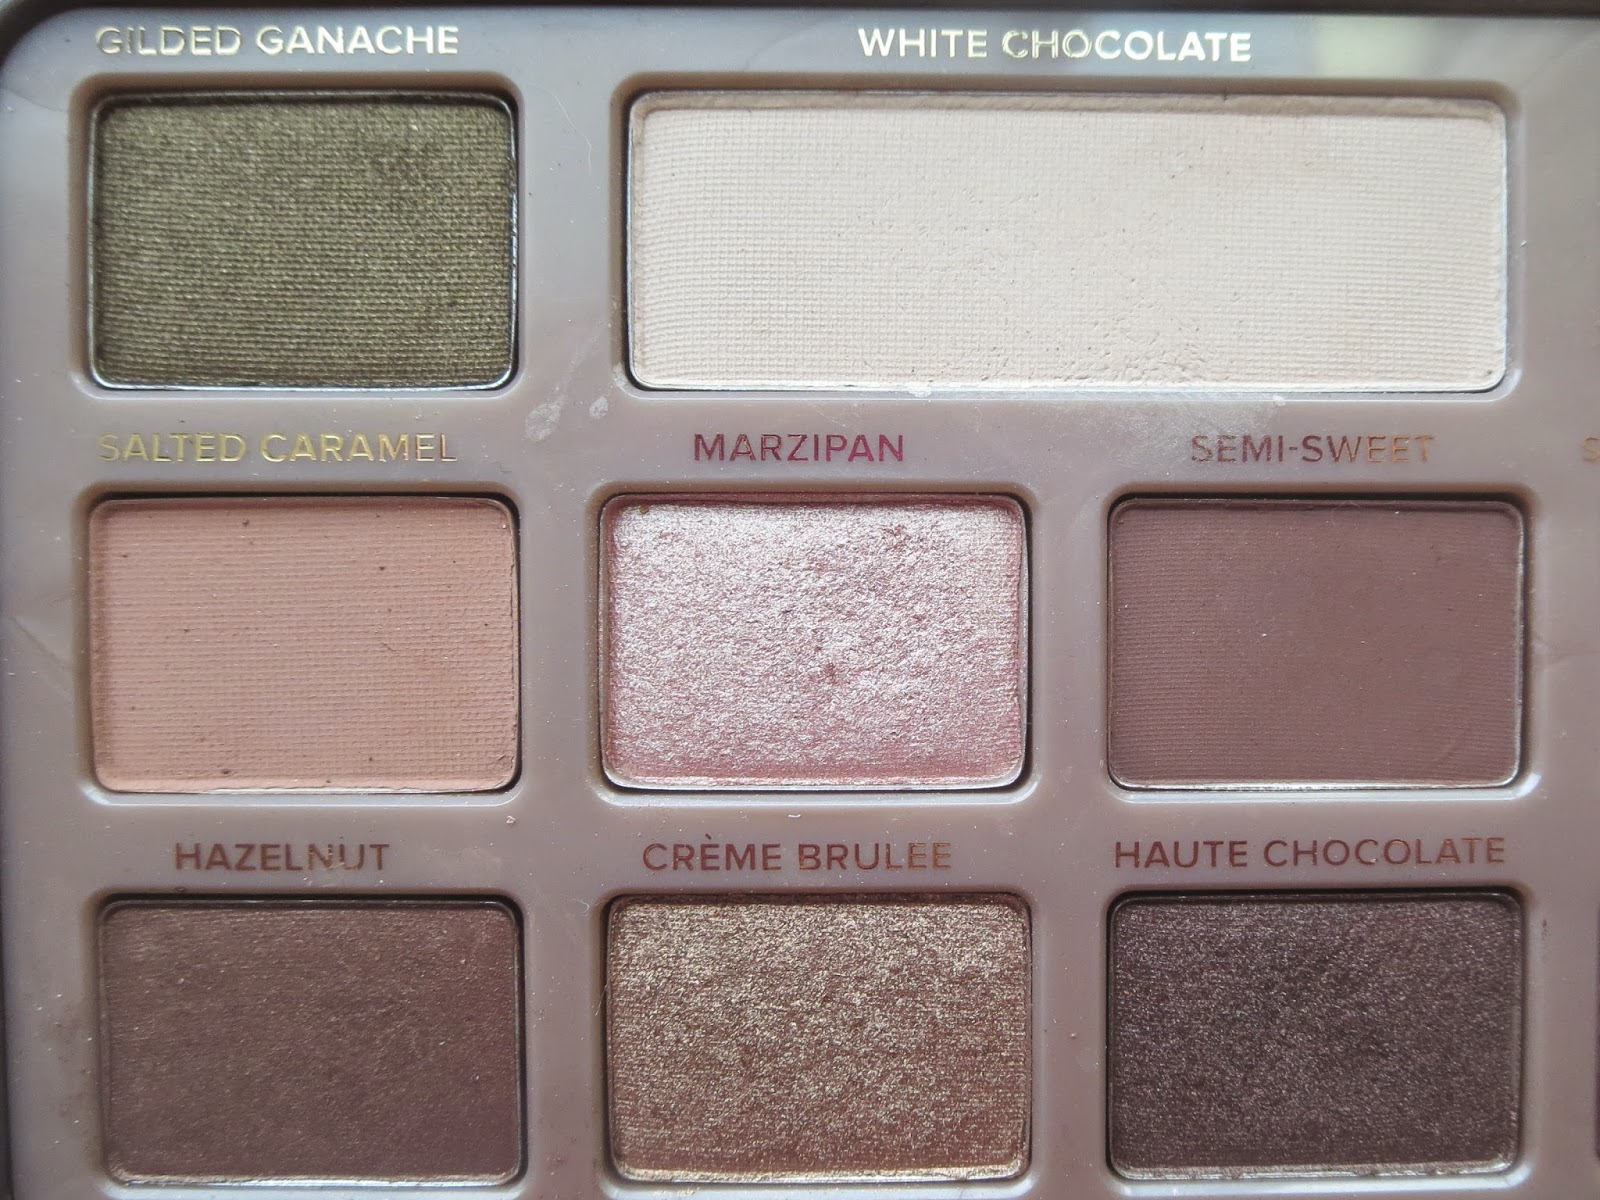 a picture of Too Faced Chocolate Bar ; Haute Chocolate, Semi-Sweet, Creme Brulee, Marzipan, White Chocolate, Hazelnut, Salted Caramel, Gilded Ganache